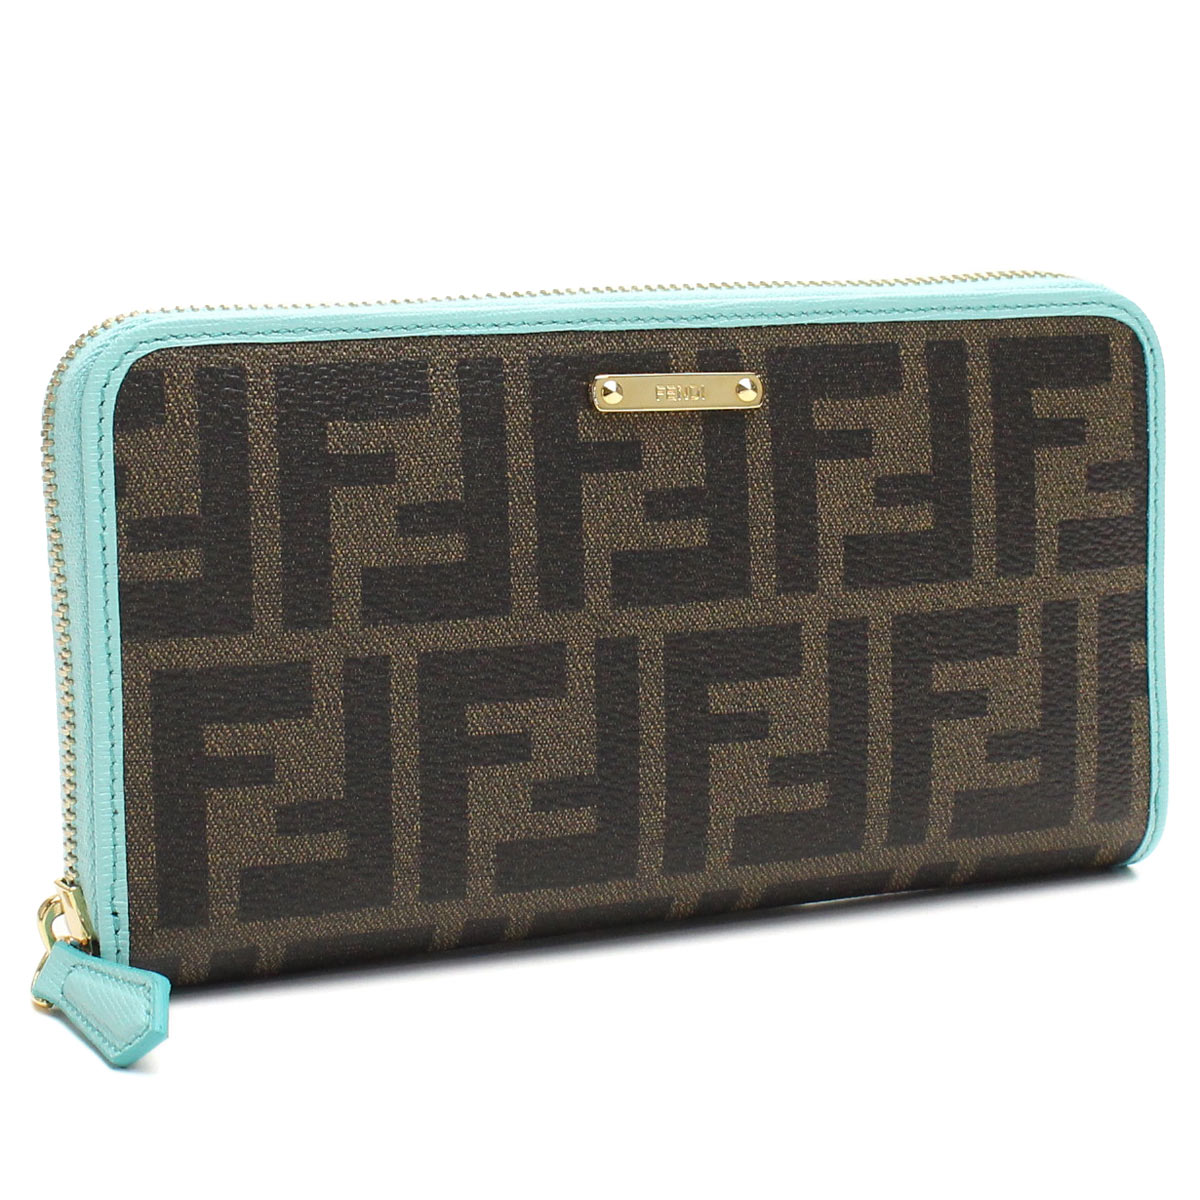 4371af8ddca Bighit The total brand wholesale  Fendi (FENDI) wallet large zip around  8M0299 00GRP F 0962 Brown (purse wallet)( taxfree send by EMS authentic A  brand new ...